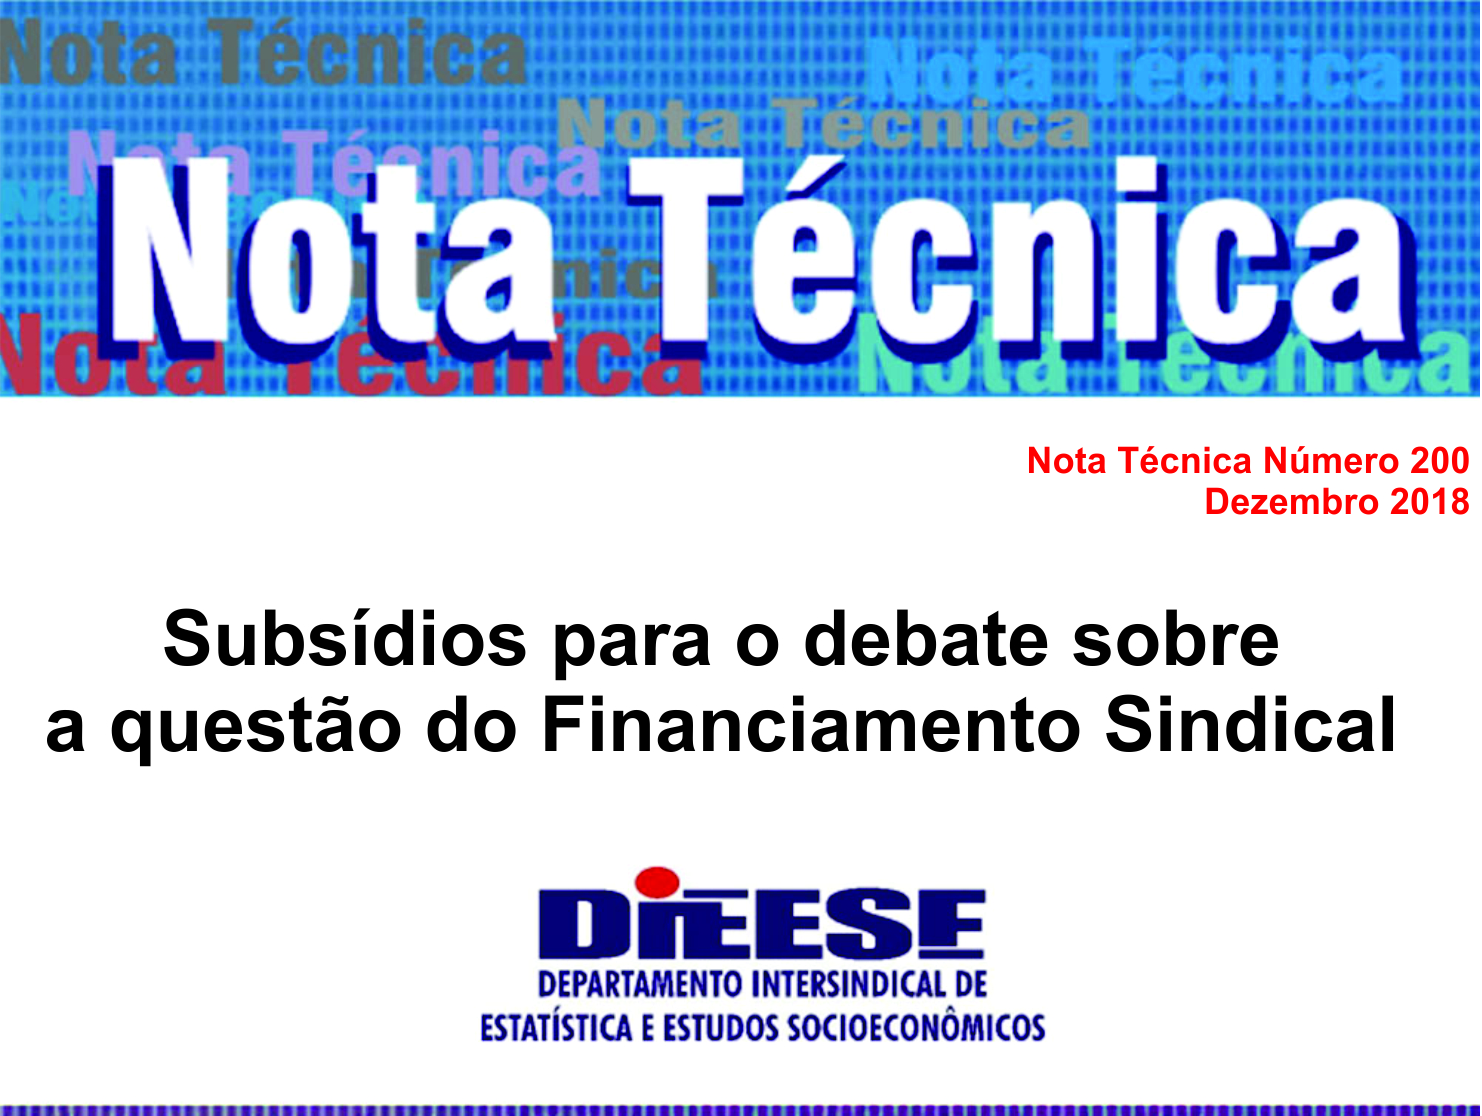 Subsídios para o debate sobre a questão do Financiamento Sindical